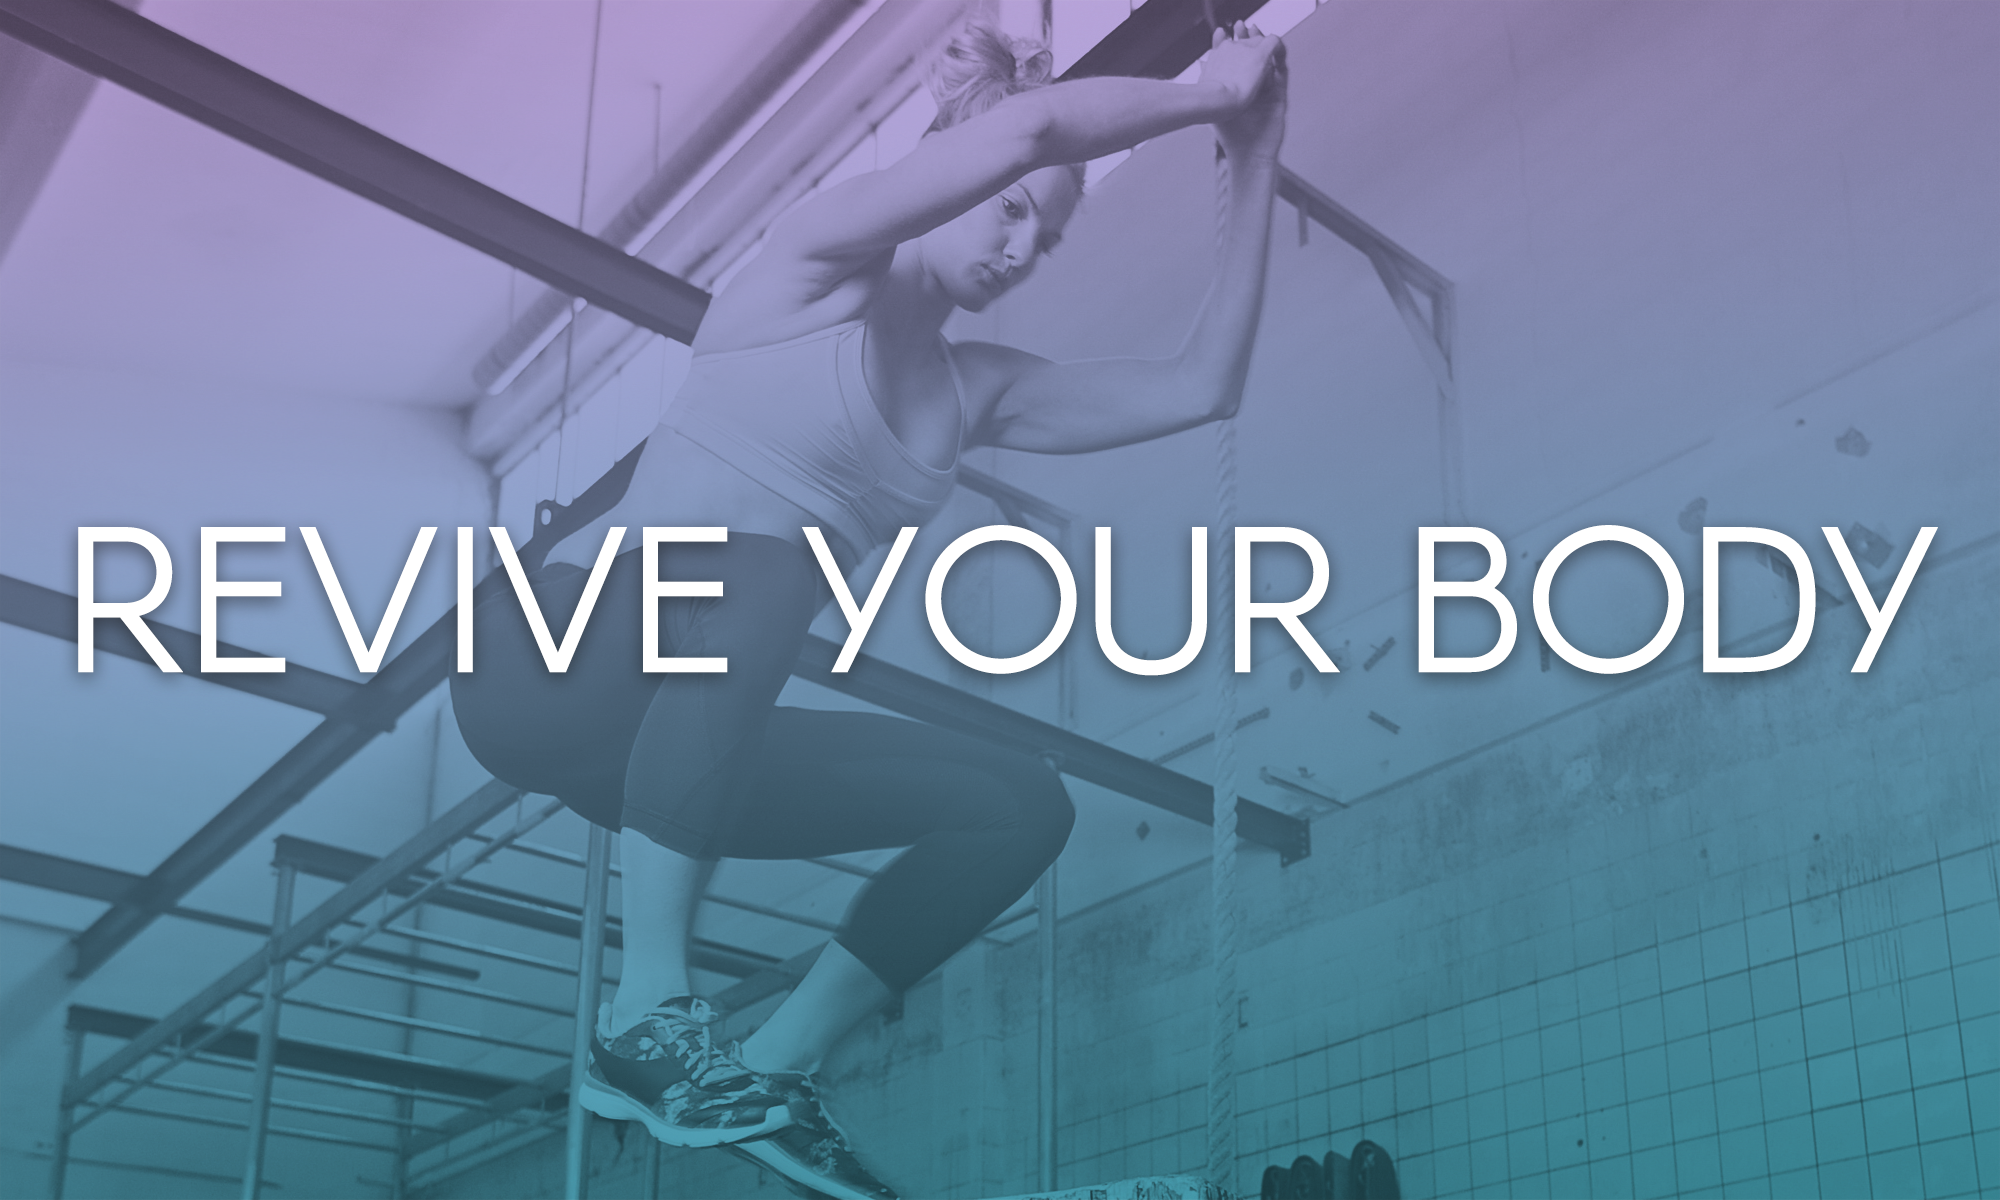 Revive Your Body.